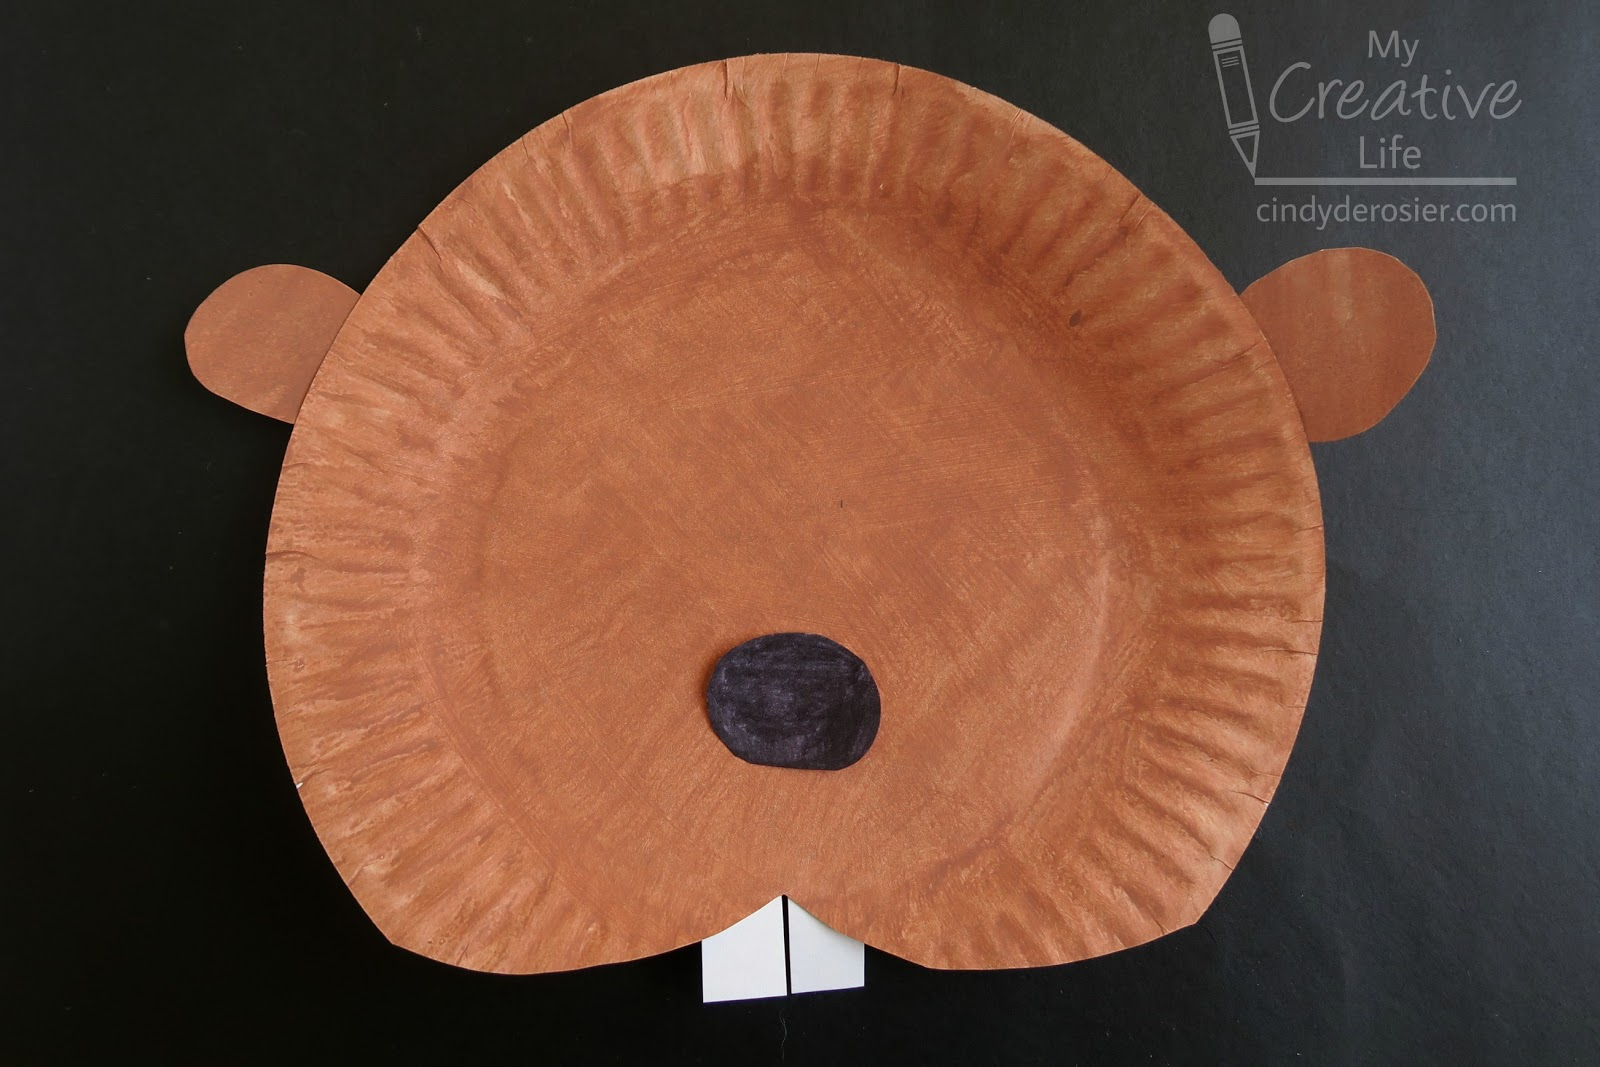 Glue the ears behind the paper plate at the 200 and 1000 positions. Glue the nose to the front of the plate slightly below center. & Cindy deRosier: My Creative Life: Paper Plate Beaver